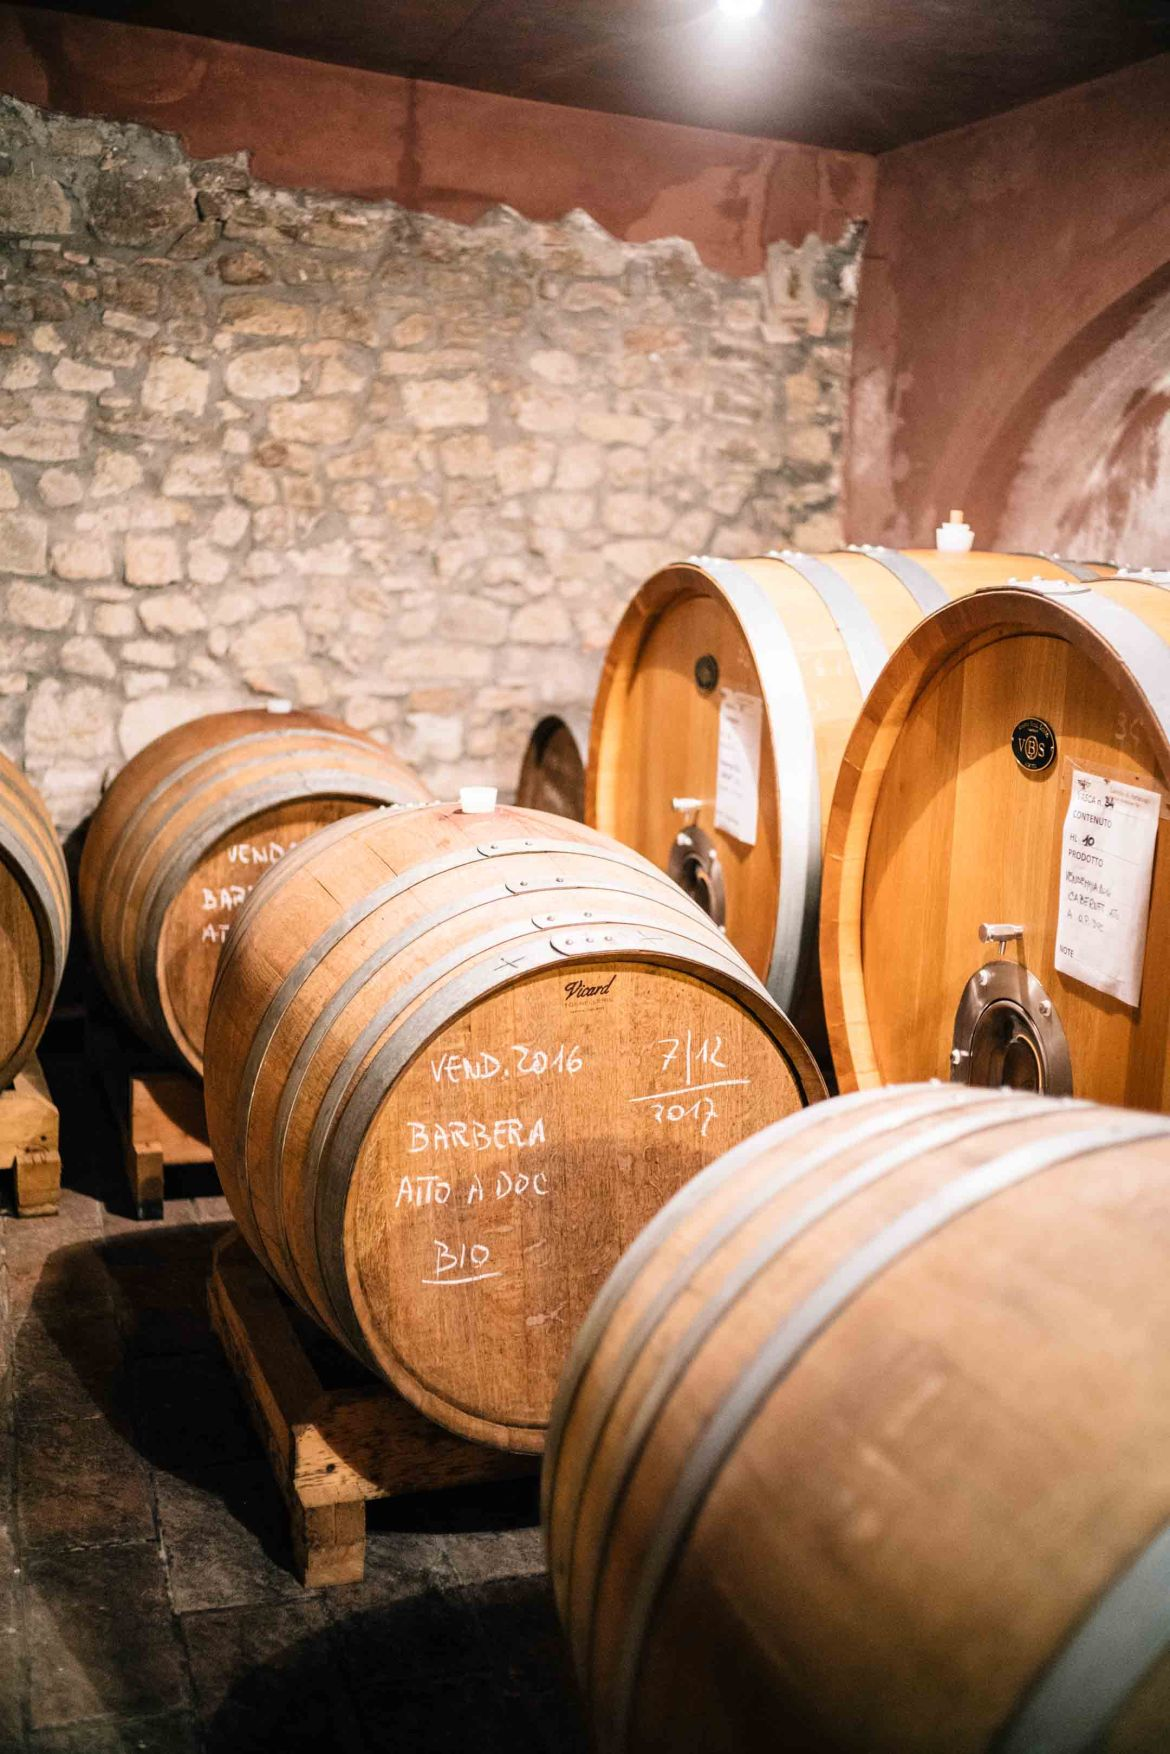 The Taste Edit, culinary photographers, recommends visiting this magical winery in northern Italy. Castello di Stefanago is near the town of Pavia in Lombardy. Winemaker and owner Giacomo Baruffaldi gives us a tour of the winery where they make Baruffaldi natural wines. Wine aging in barrels.